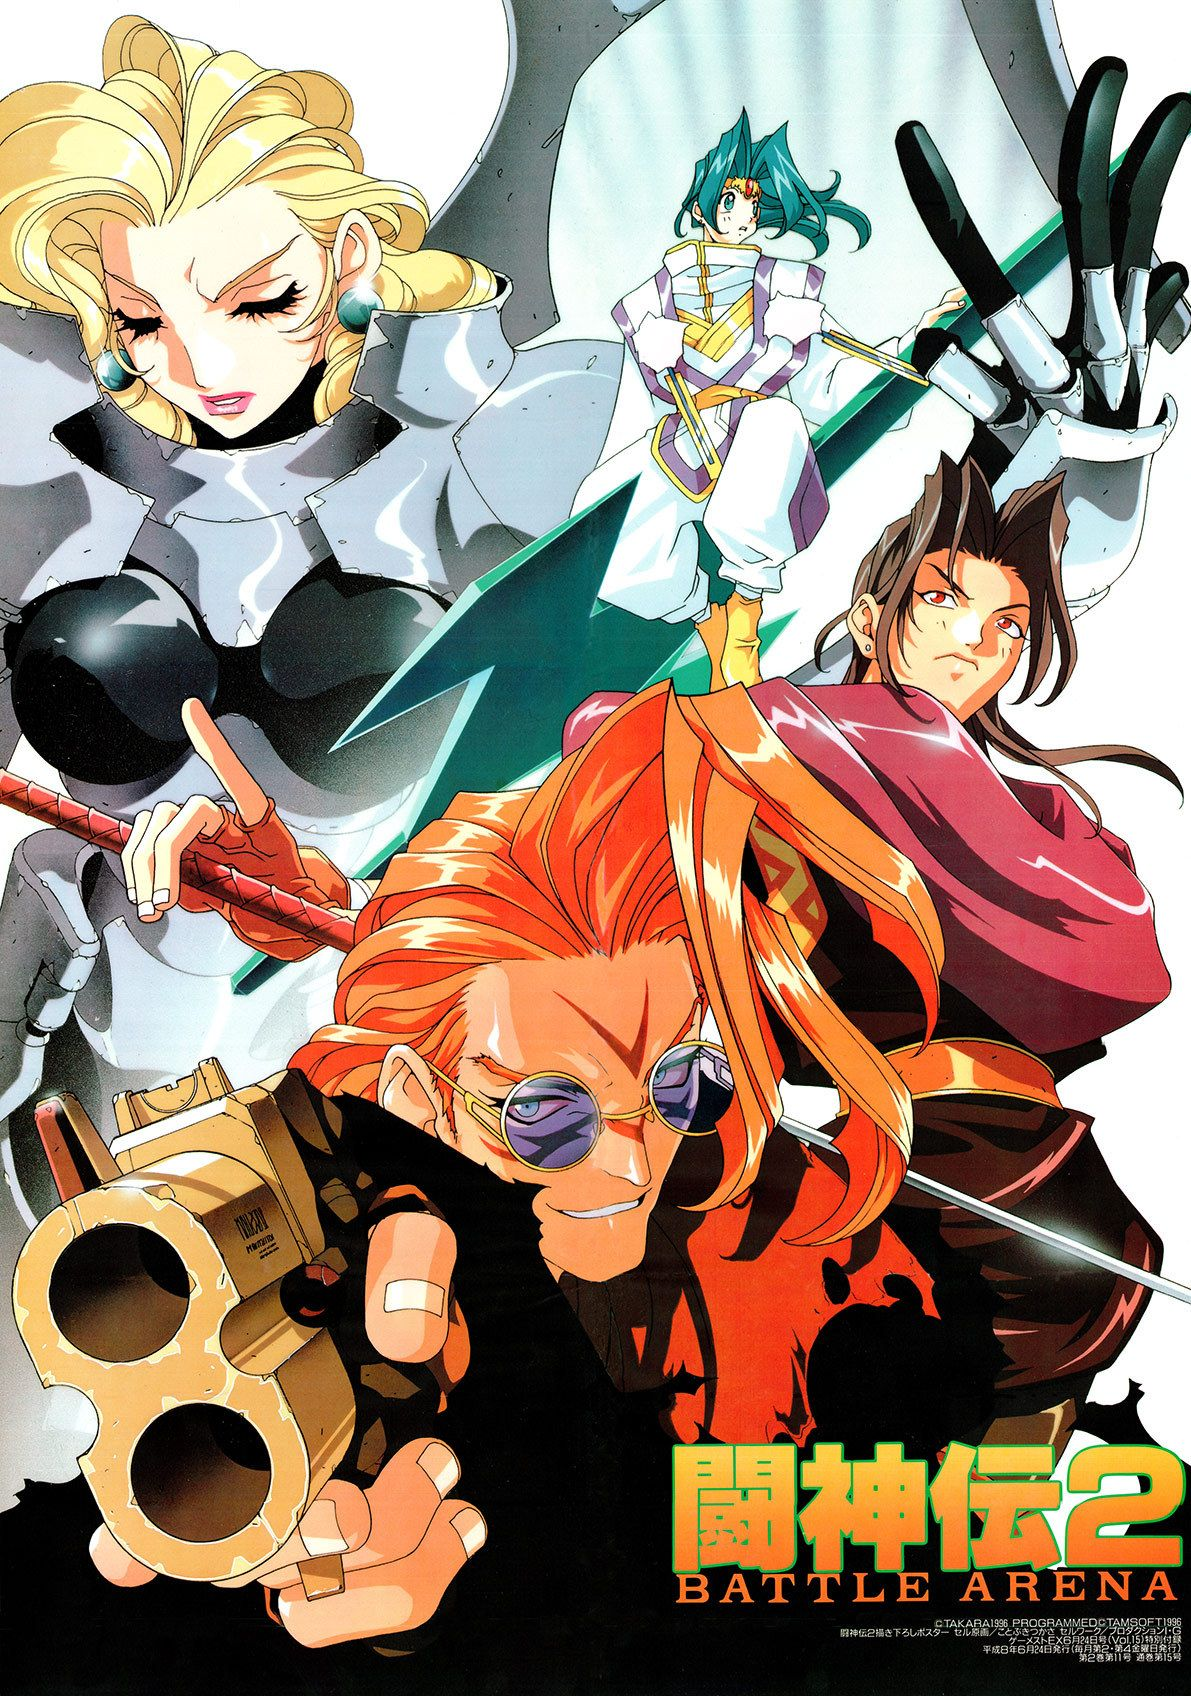 Toshinden Tuesdays Tumblr Anime Artwork